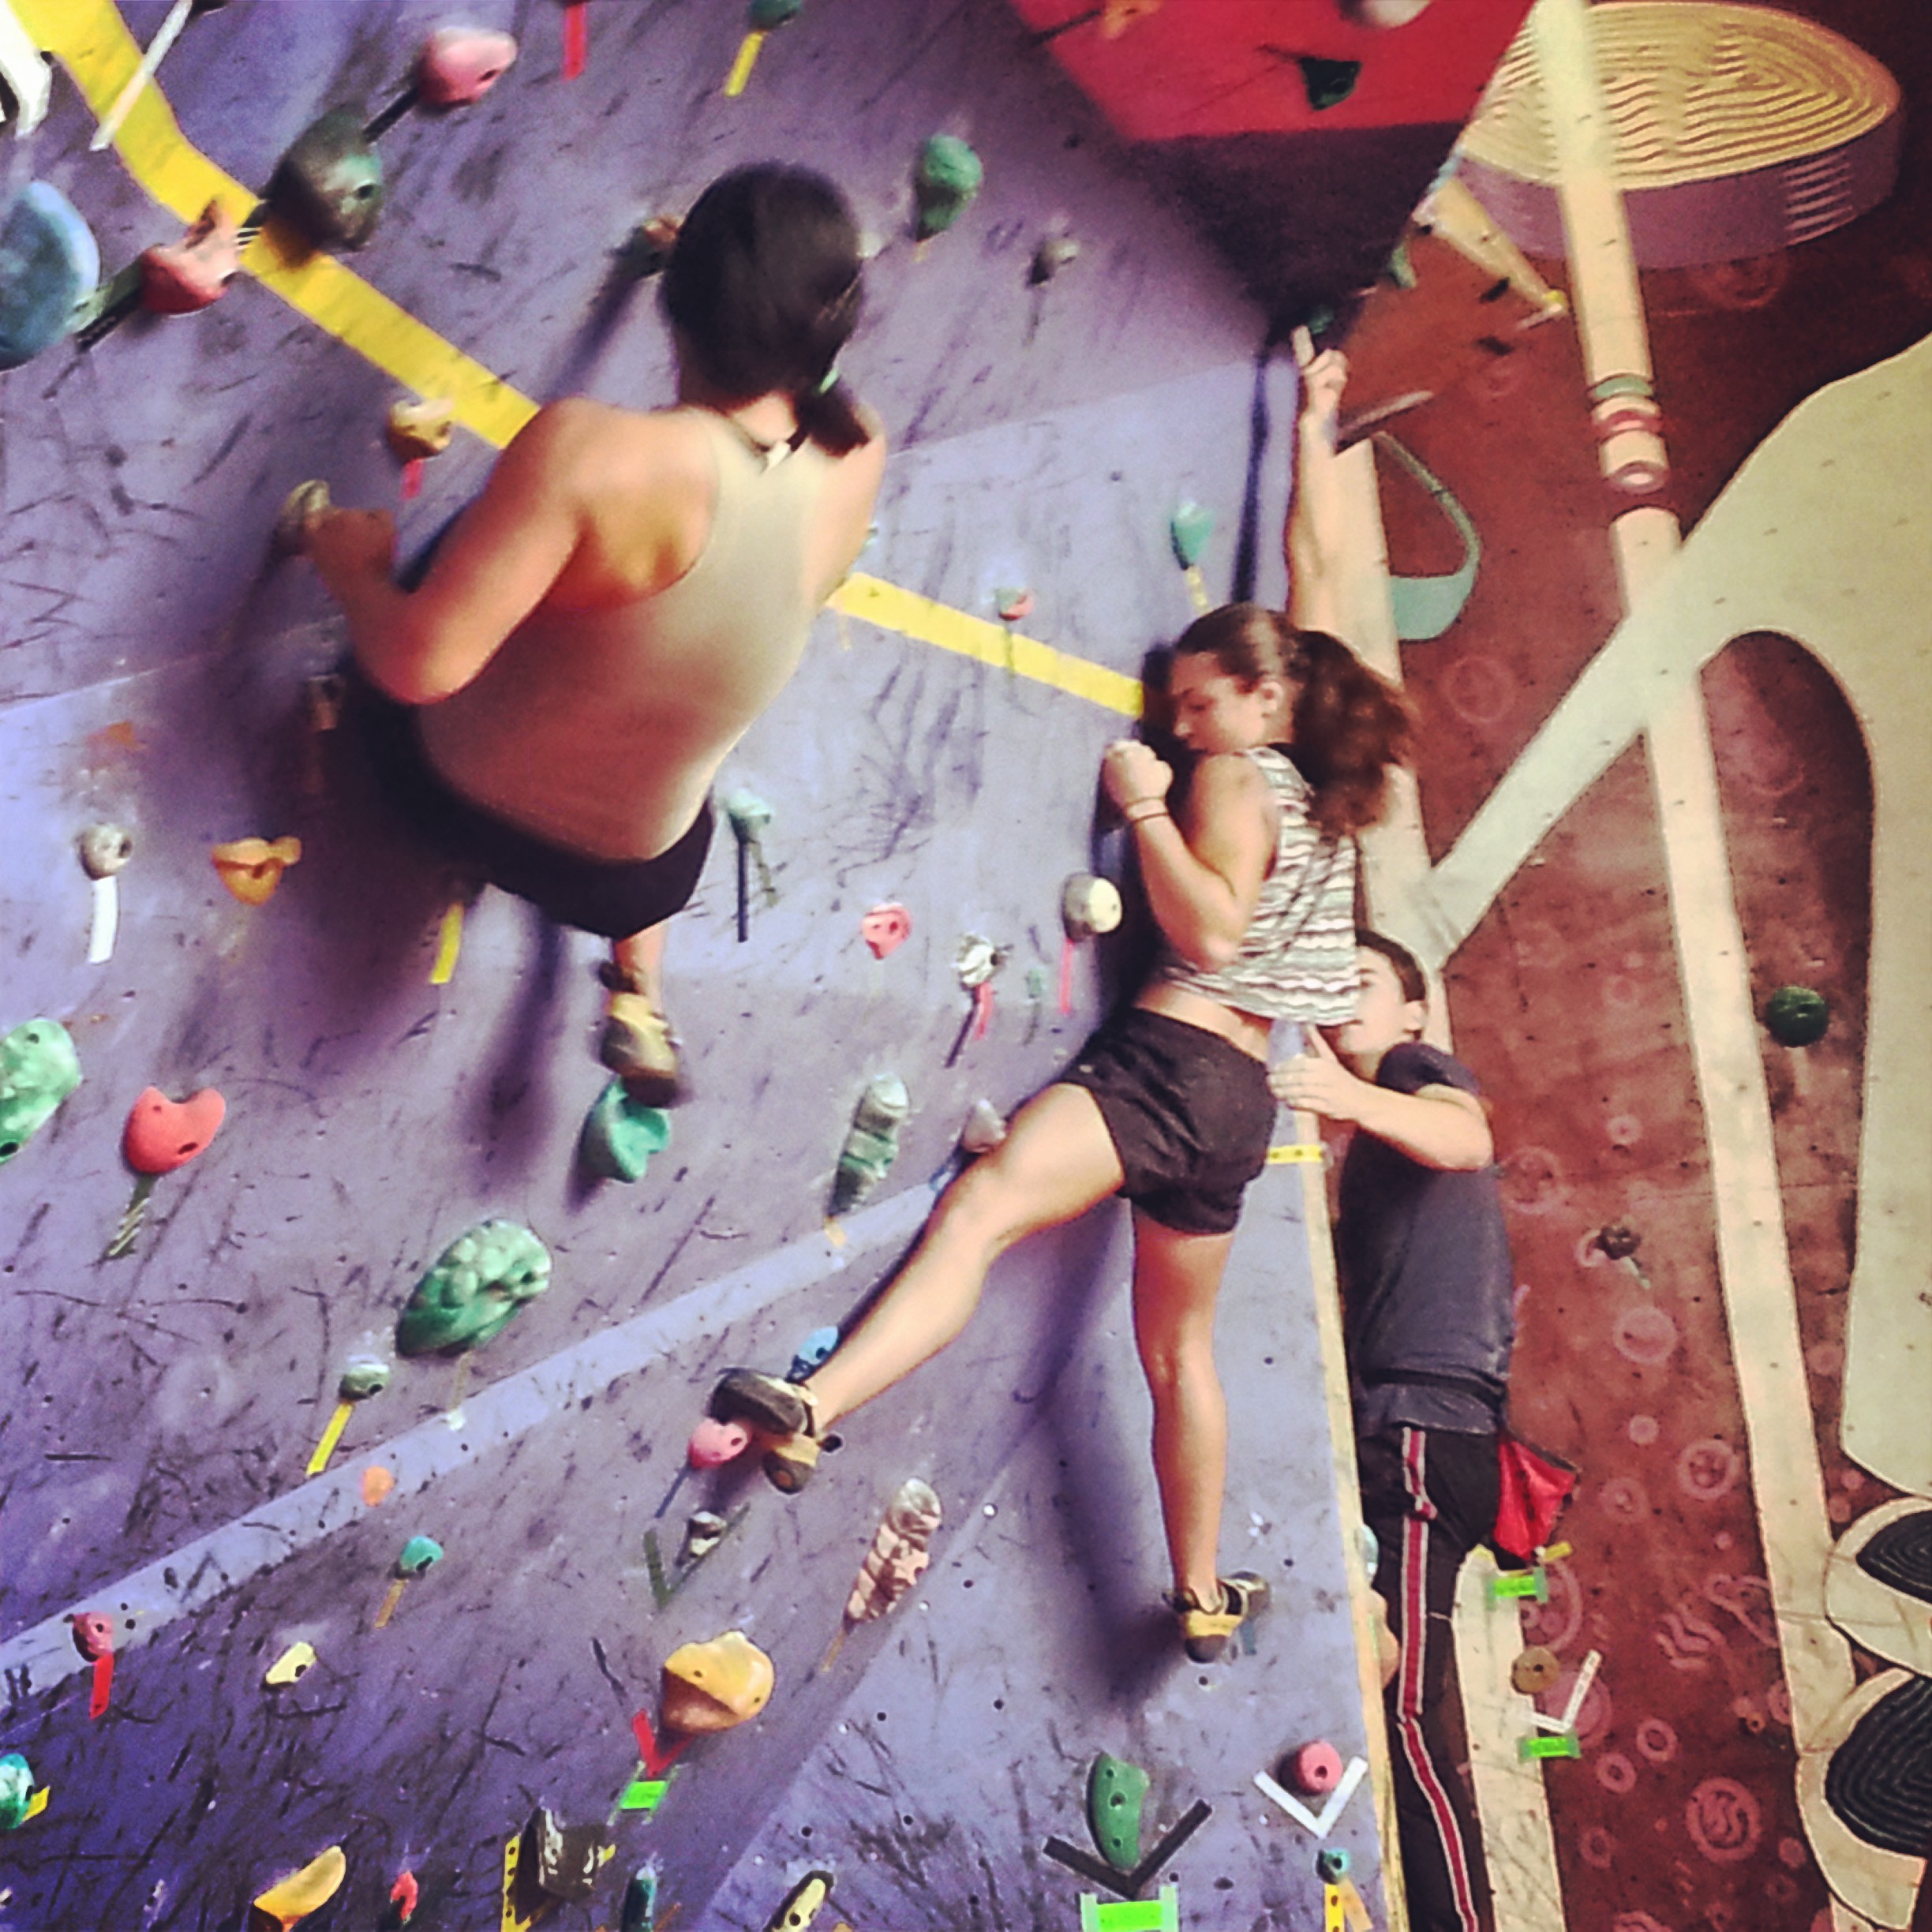 Women Climbers at Bouldering Championships